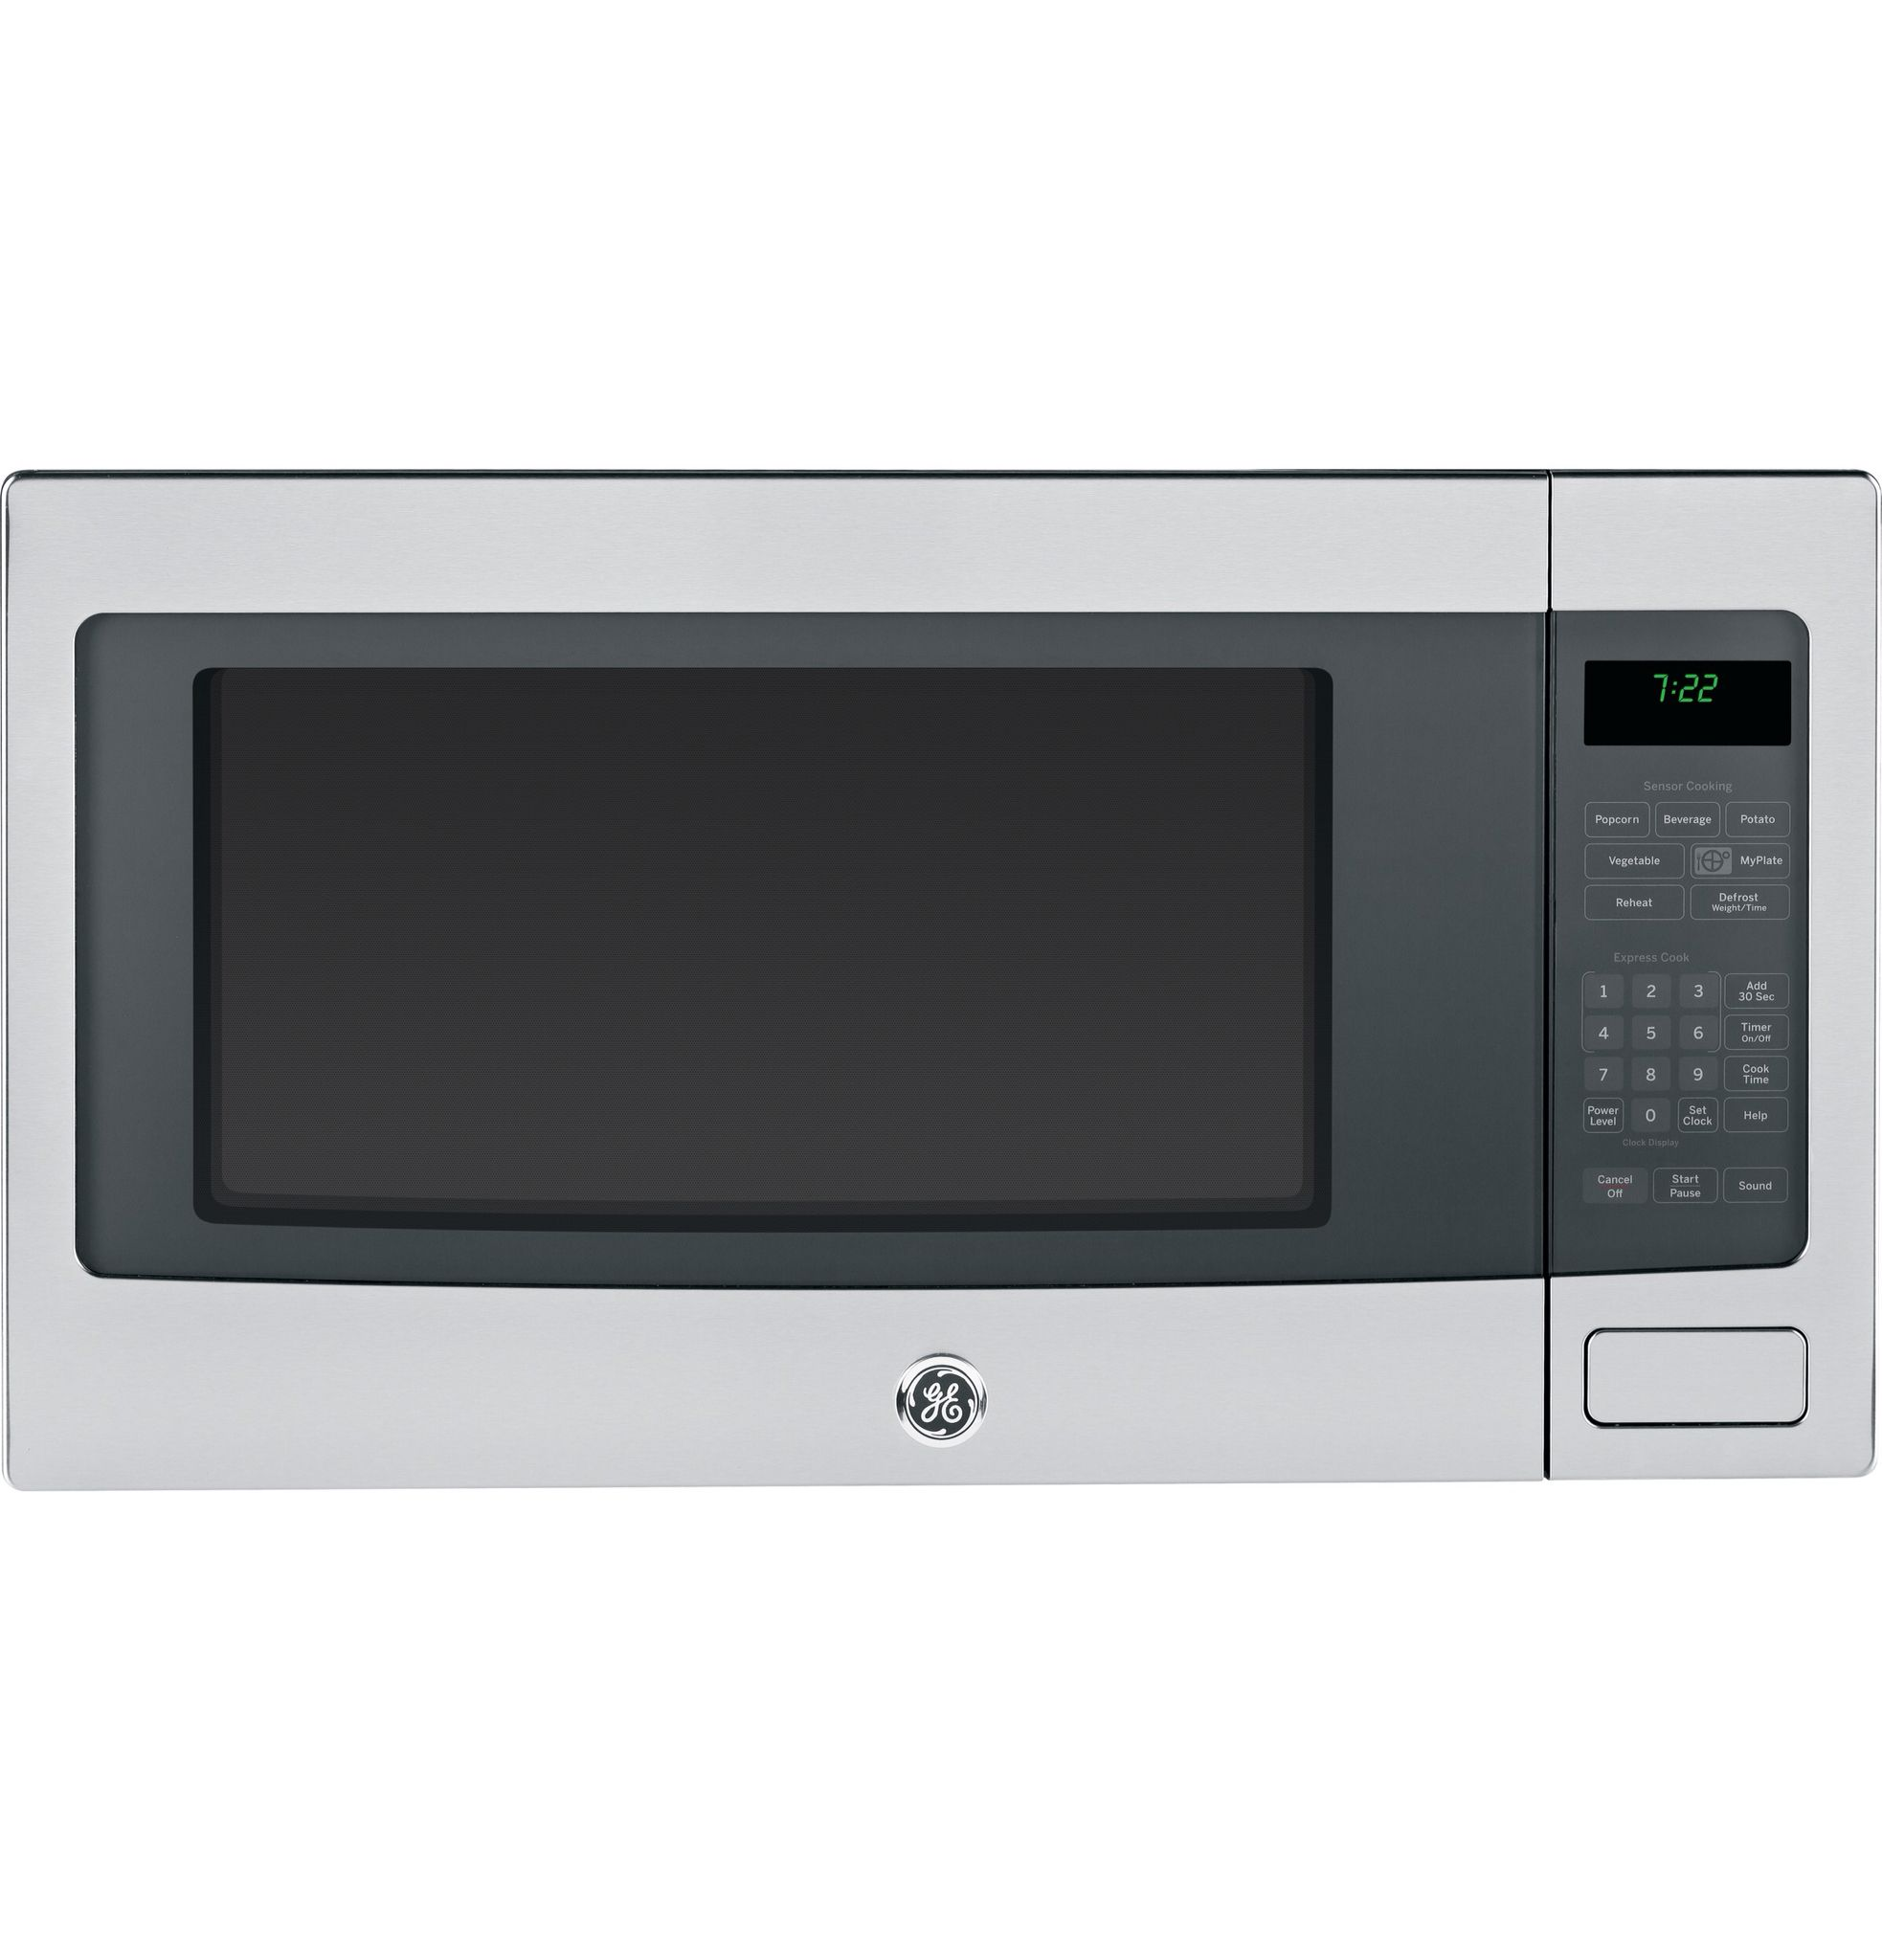 Ge Profile Microwave Built In Peb7226sf With Jx7230sf Trim Kit 30 Inch Countertop Microwave Stainless Steel Countertops Stainless Steel Microwave